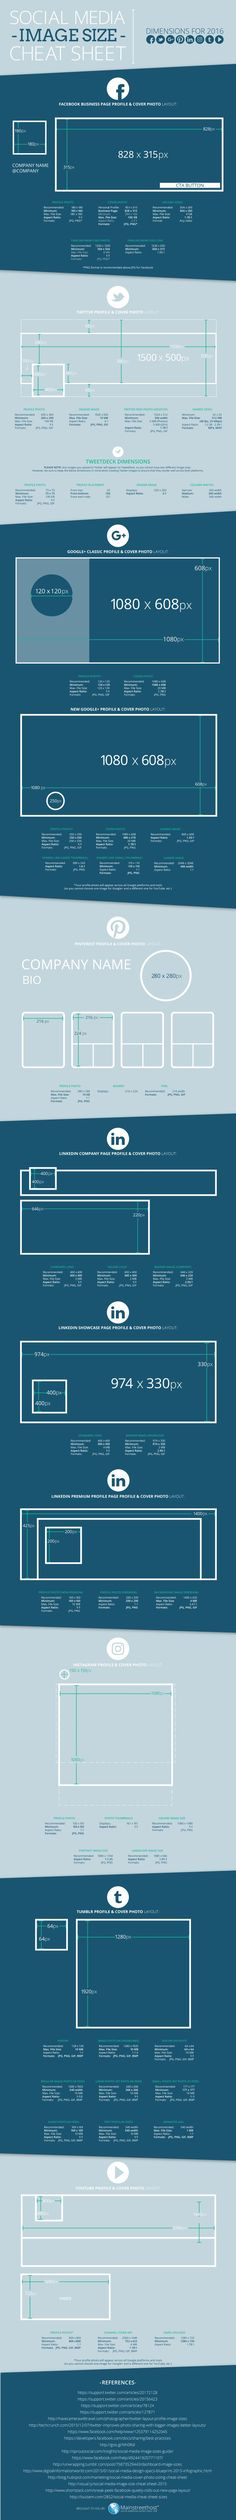 Social Media Image Size Cheat Sheet by Mainstreethost  http://onlinemarketing.de/news/social-media-cheat-sheet-2016/social-media-image-size-cheat-sheet-by-mainstreethost